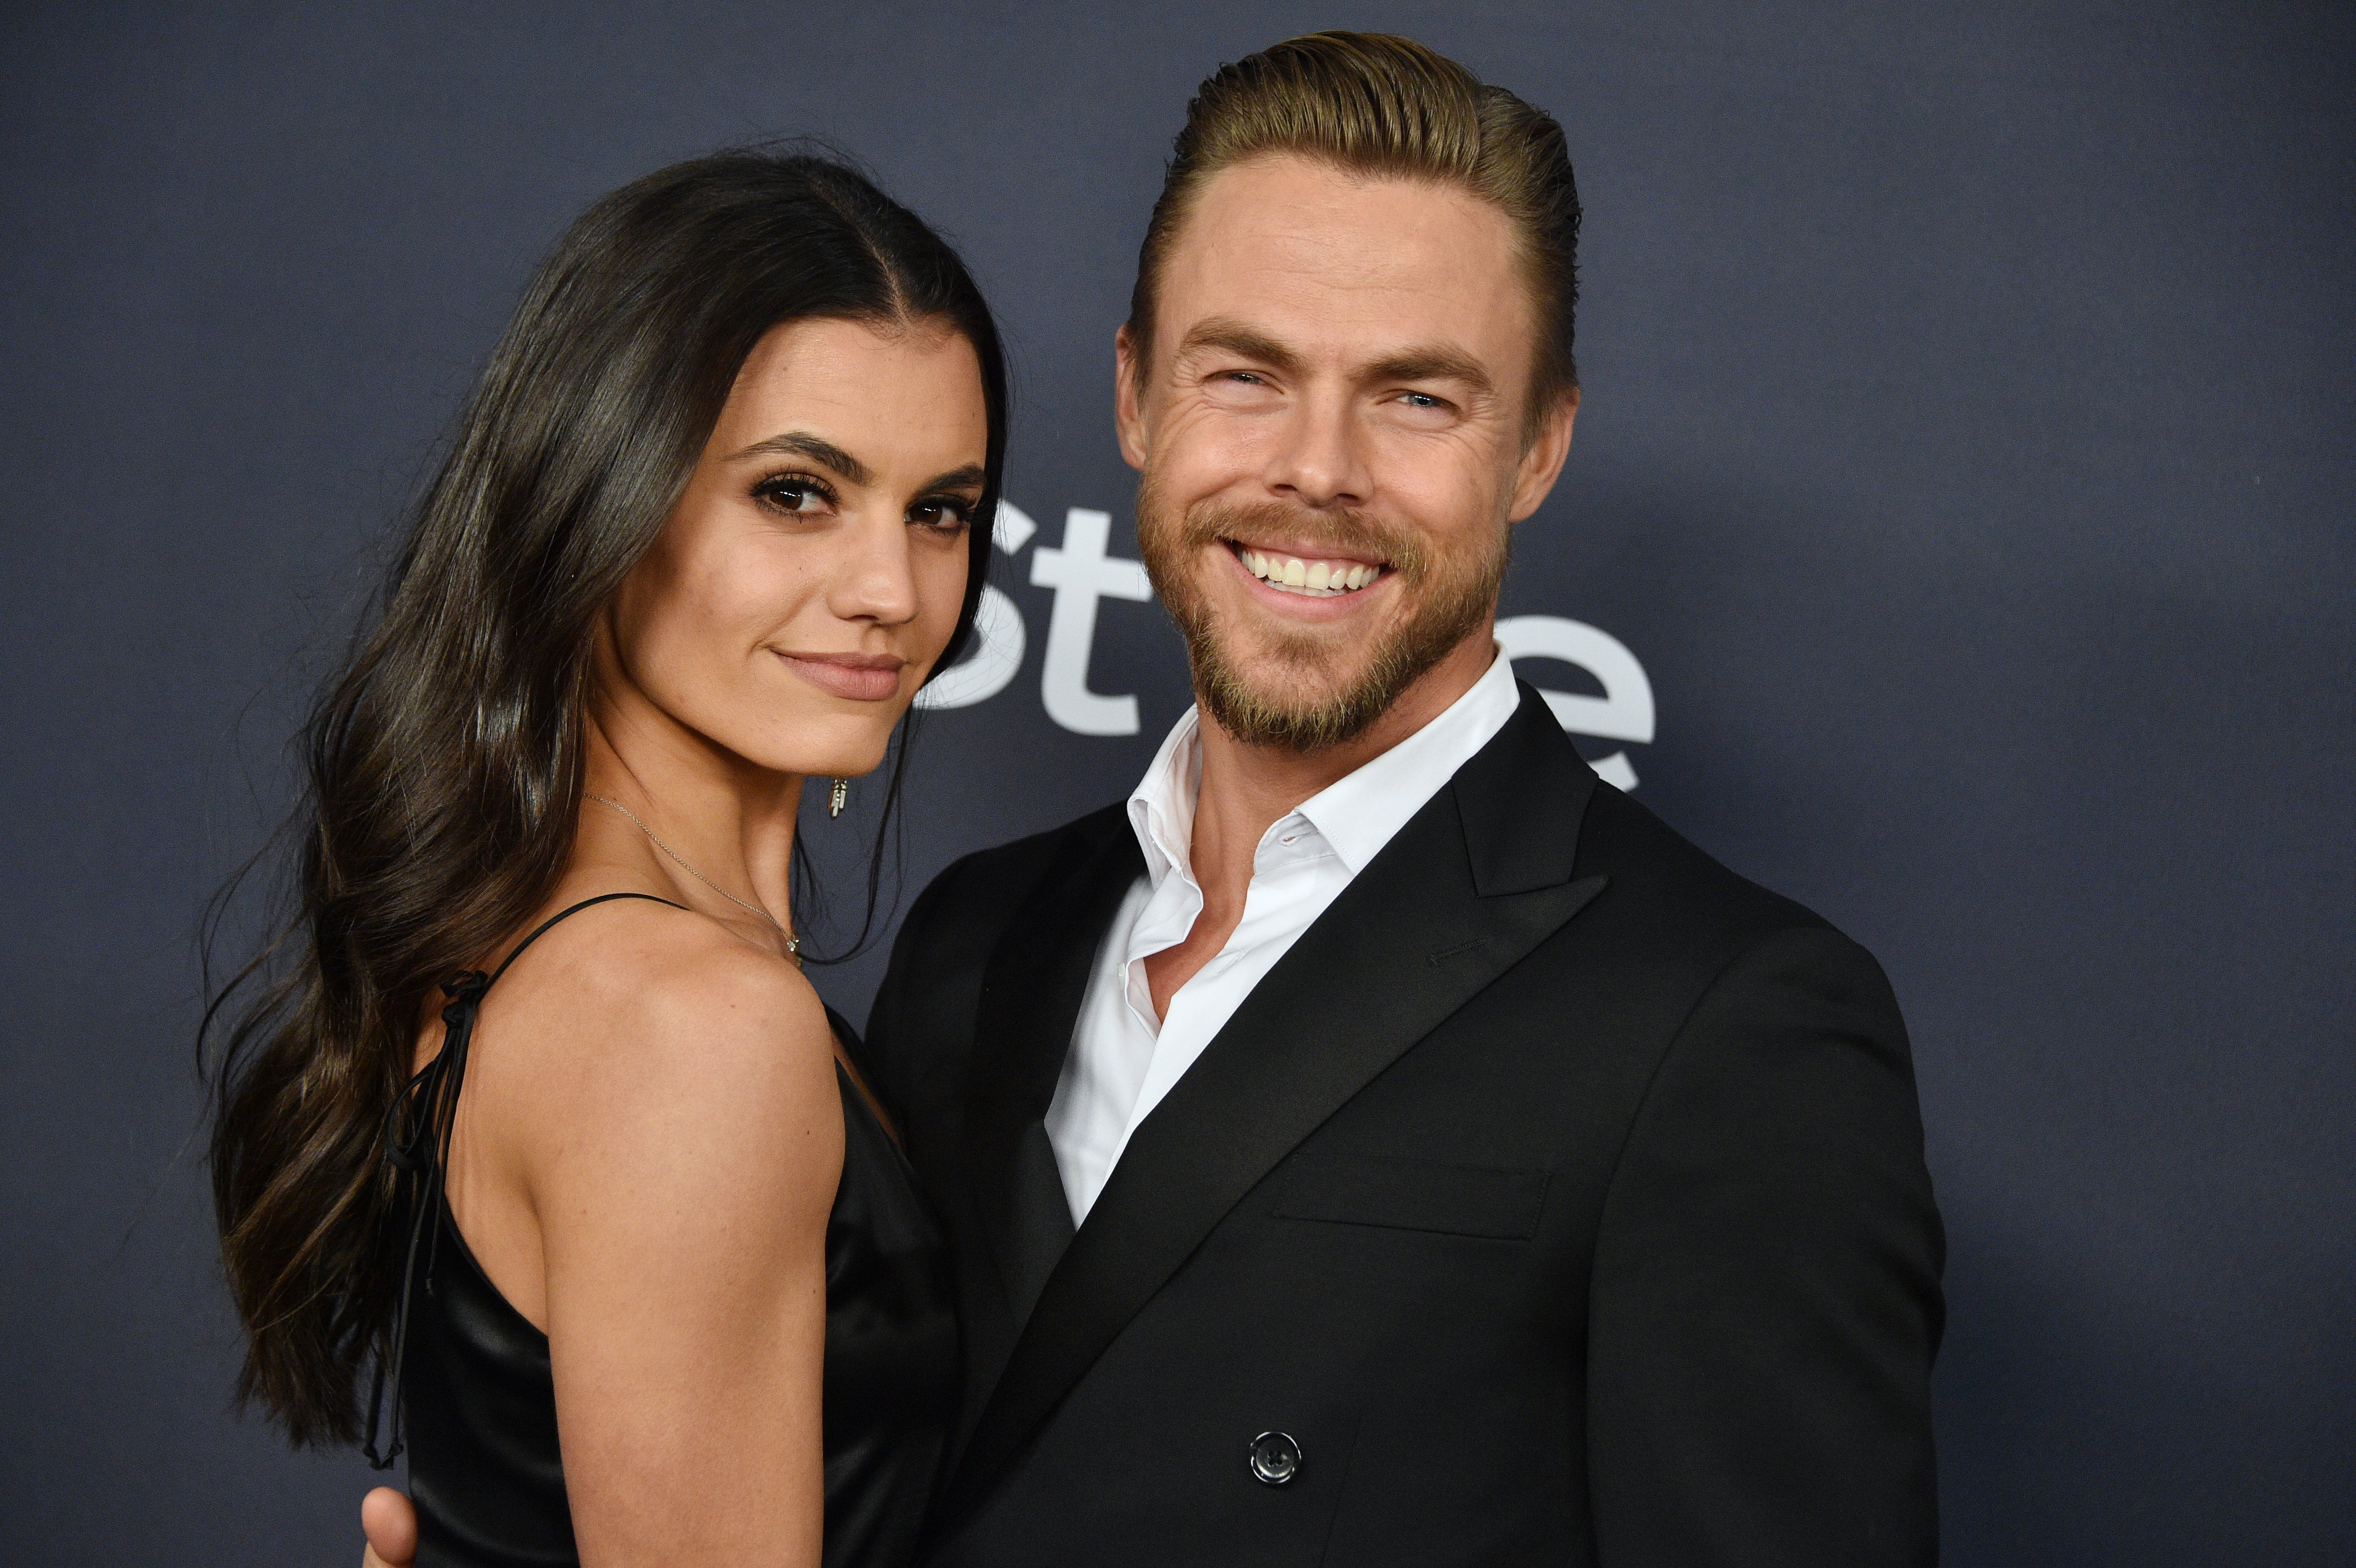 Hayley Erbert and Derek Hough attend the 21st Annual Warner Bros. And InStyle Golden Globe After Party on January 05, 2020, in Beverly Hills, California.   Source: Getty Images.